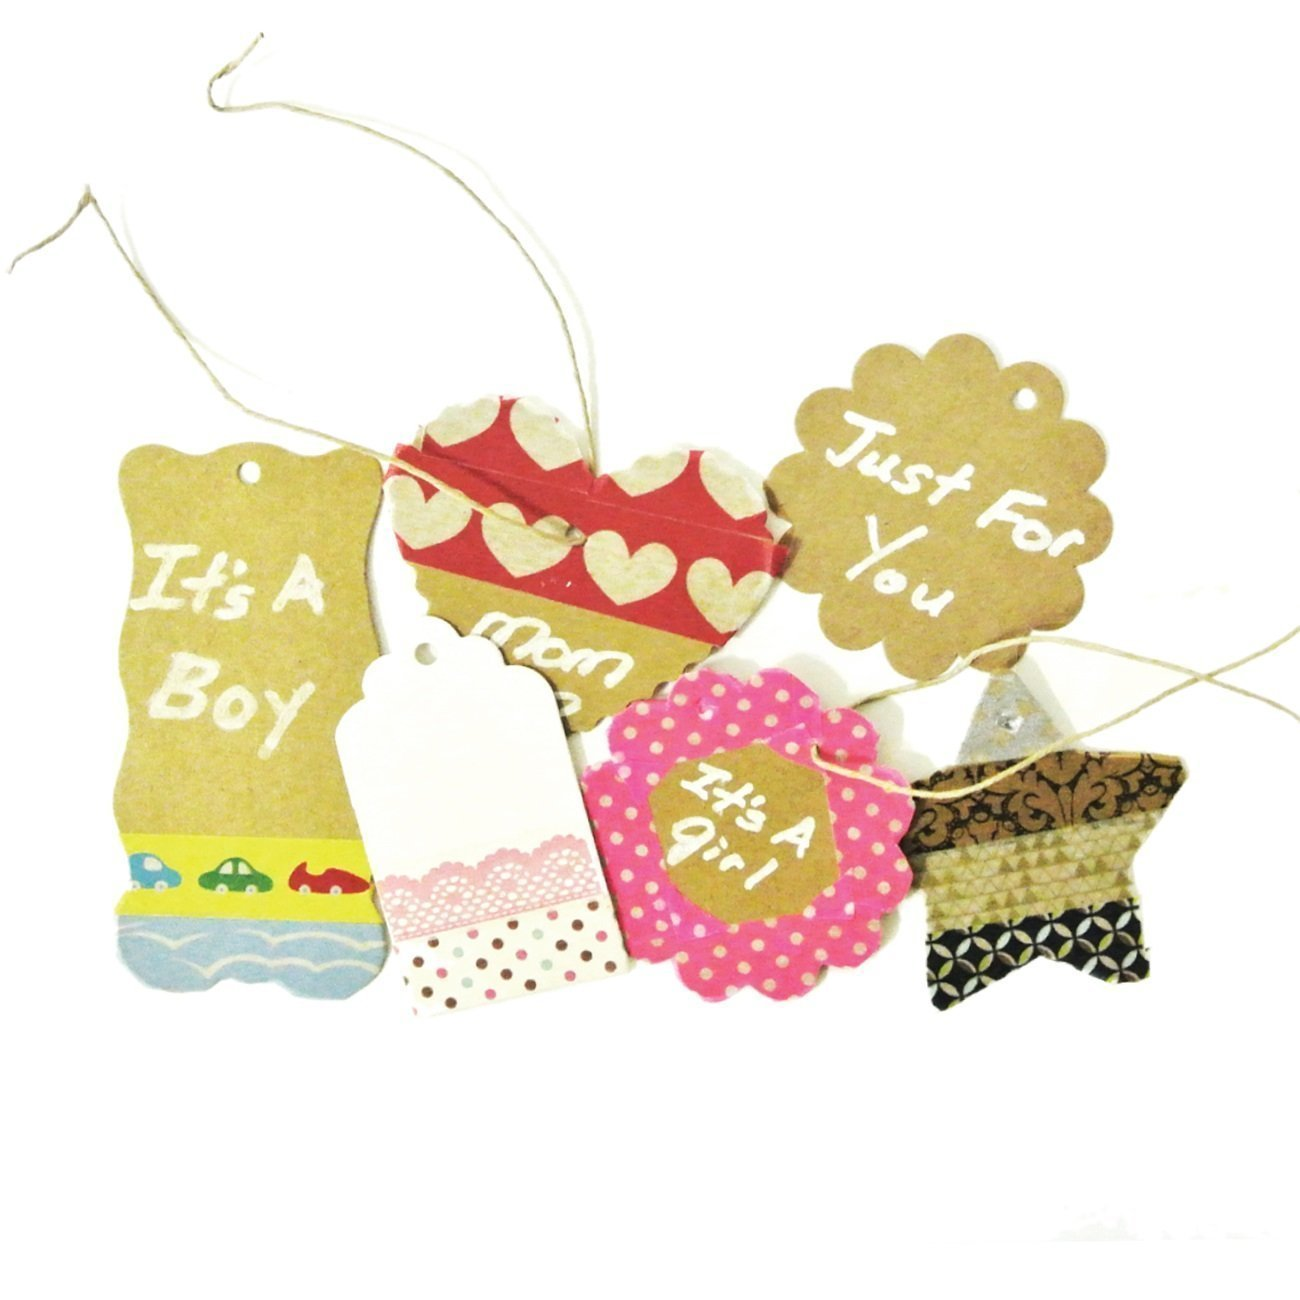 Wrapables Colorful Decorative Lace Tape Collection (Set of 8) with Shimmer Gift Tags, GRP01